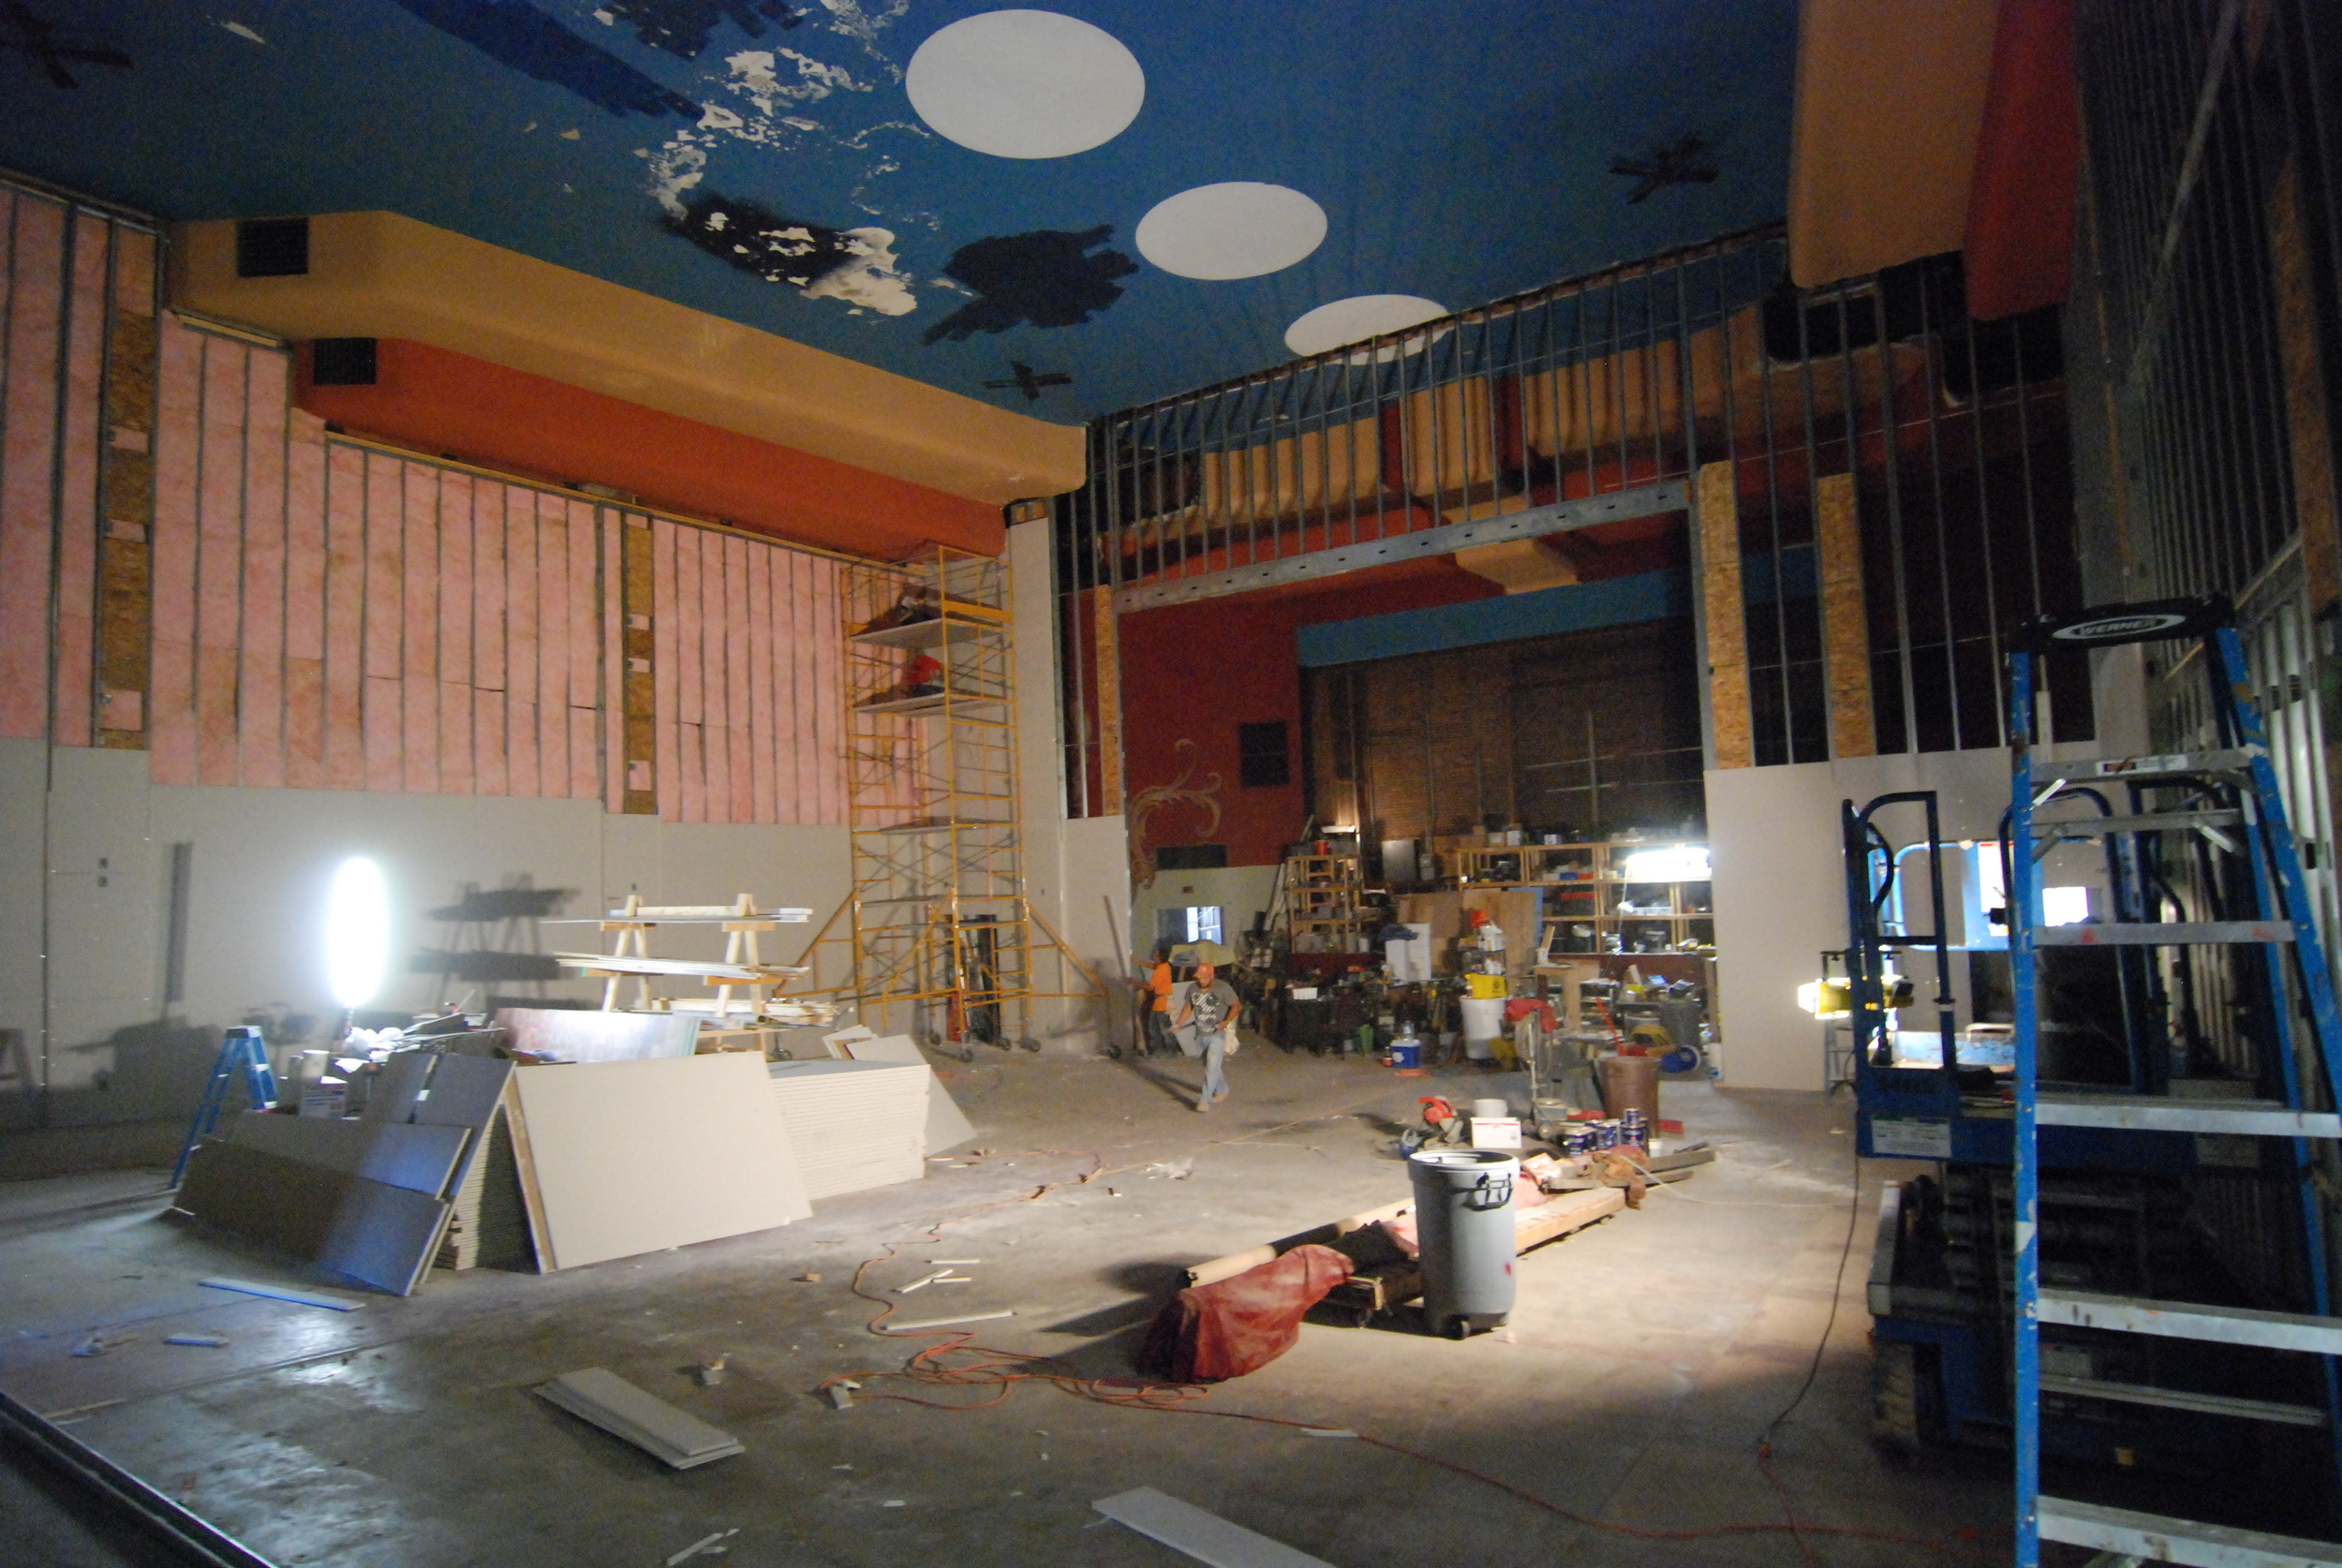 Midway day on of Crazy Drywall Madness